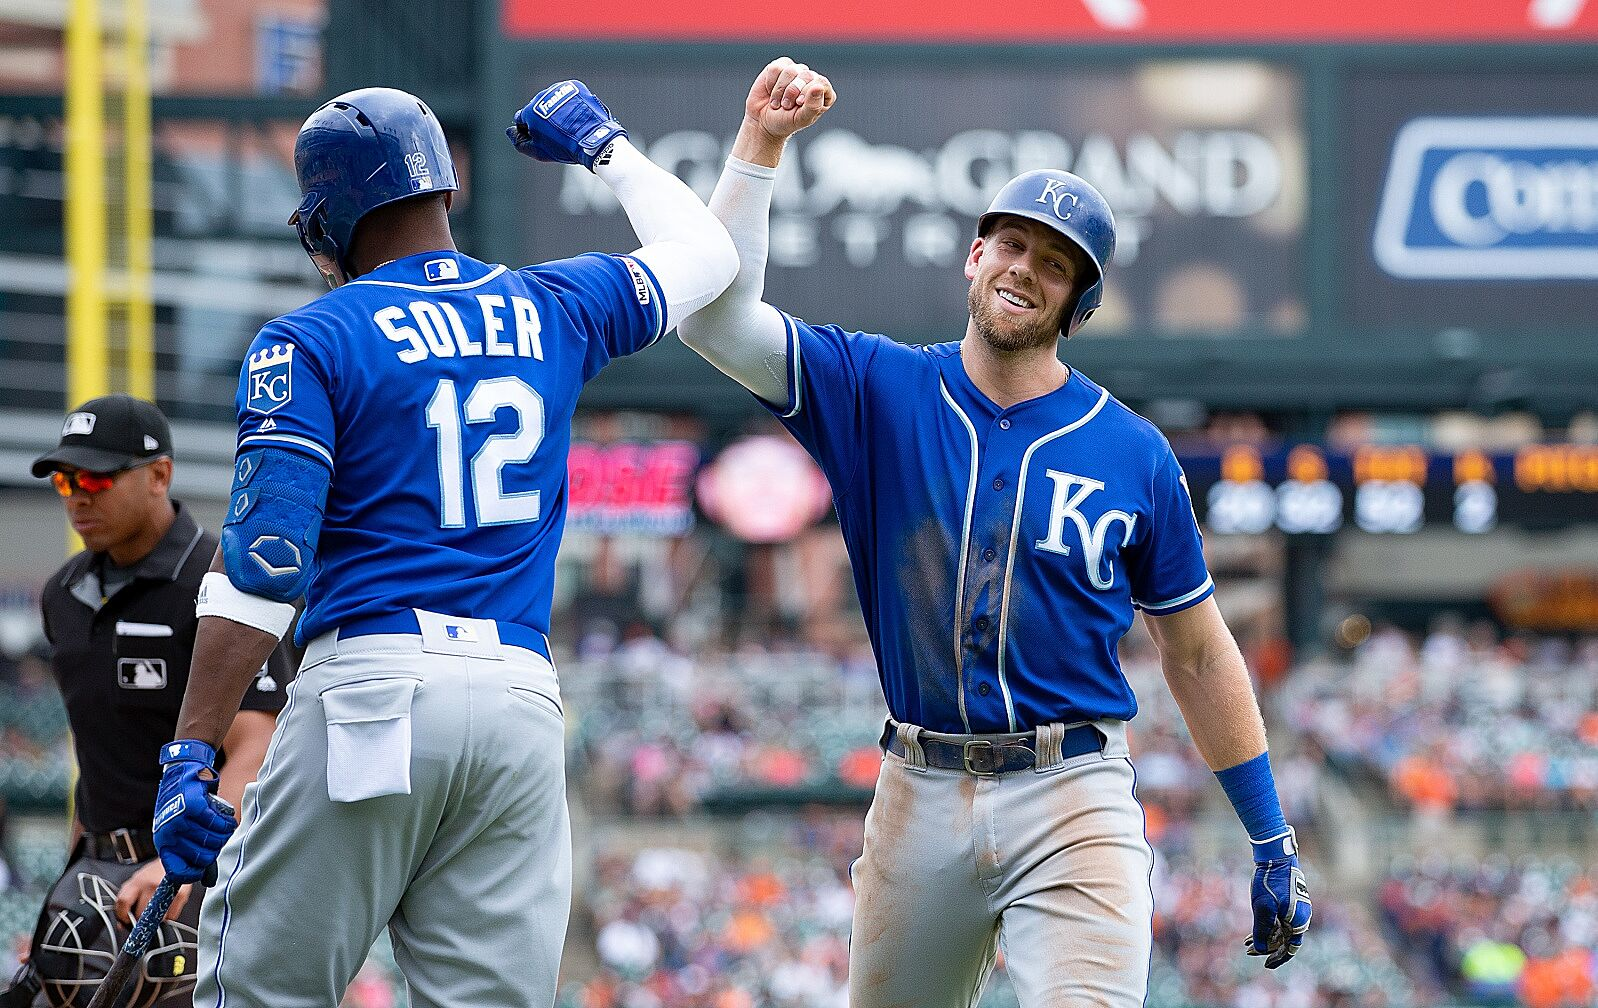 Home Runs 2020.Royals Candidates To Hit 20 Home Runs In The 2020 Season